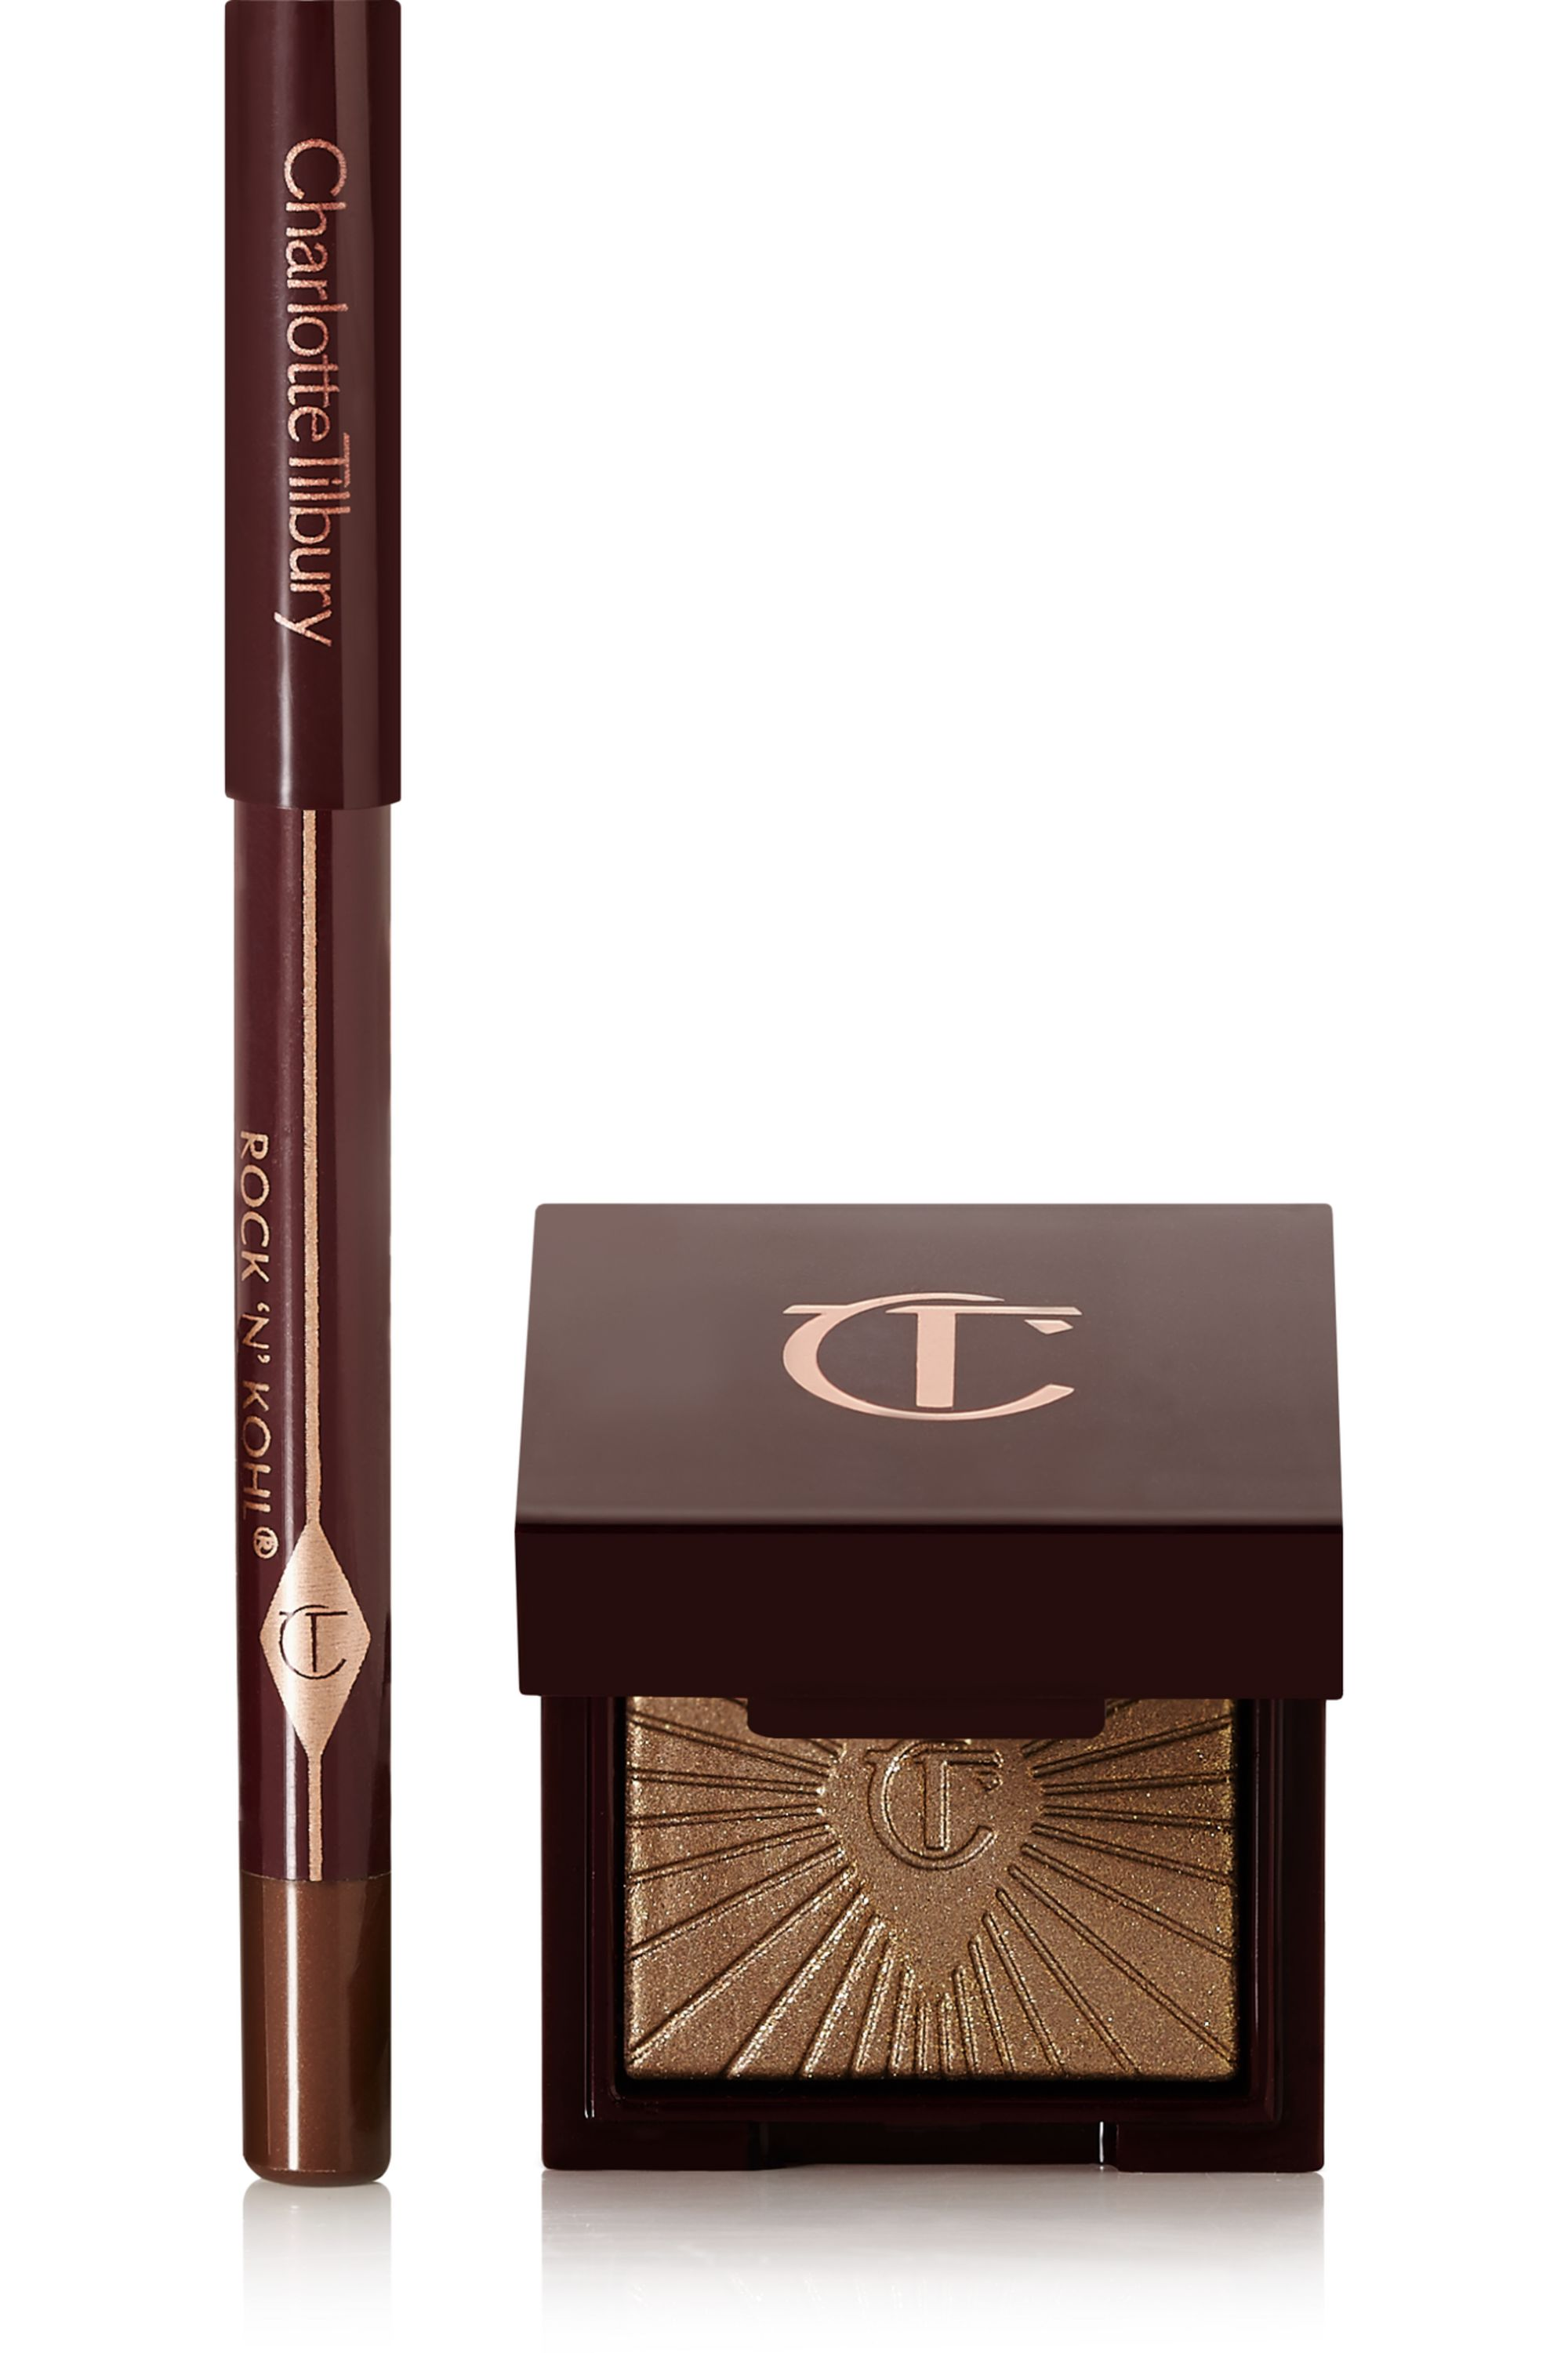 Charlotte Tilbury Nocturnal Cat Eyes to Hypnotise - The Huntress